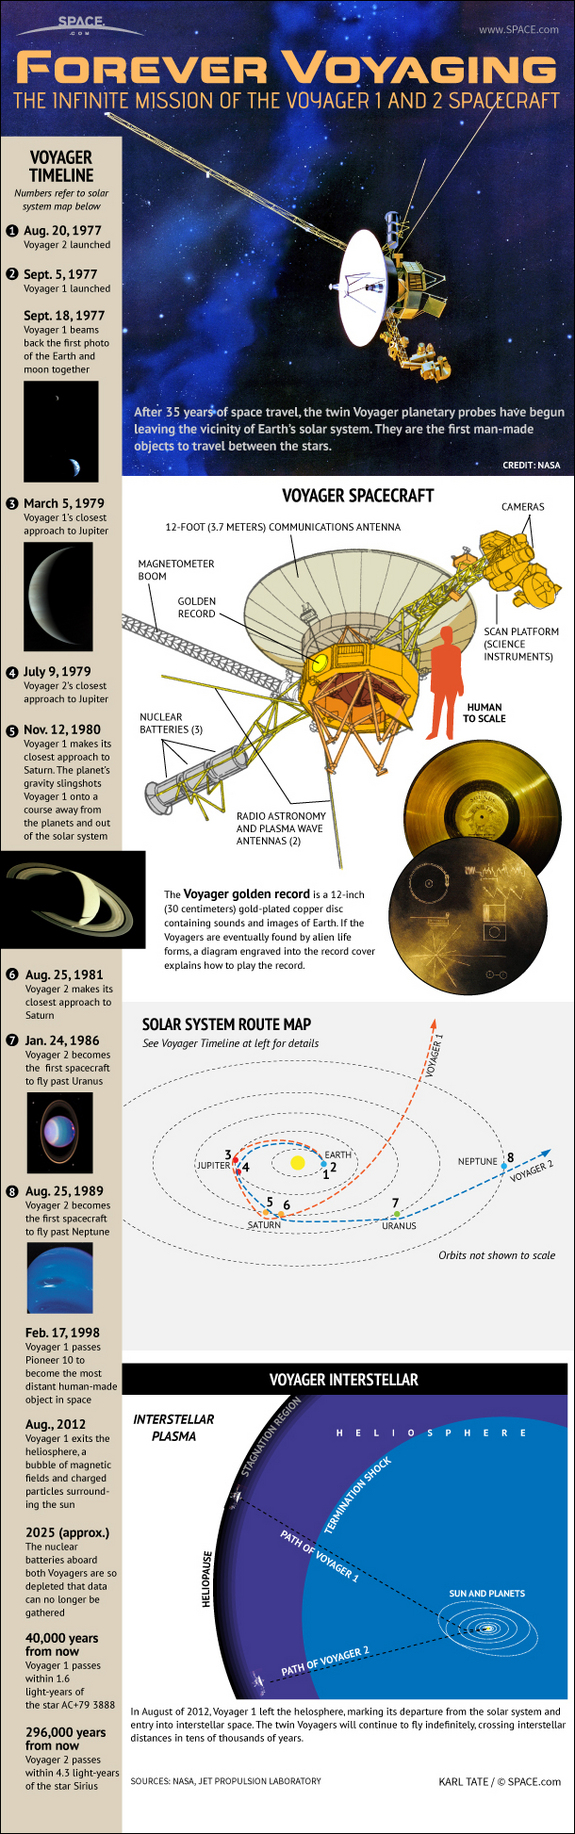 Find out how NASA's historic Voyager interplanetary probes worked in this SPACE.com infographic.